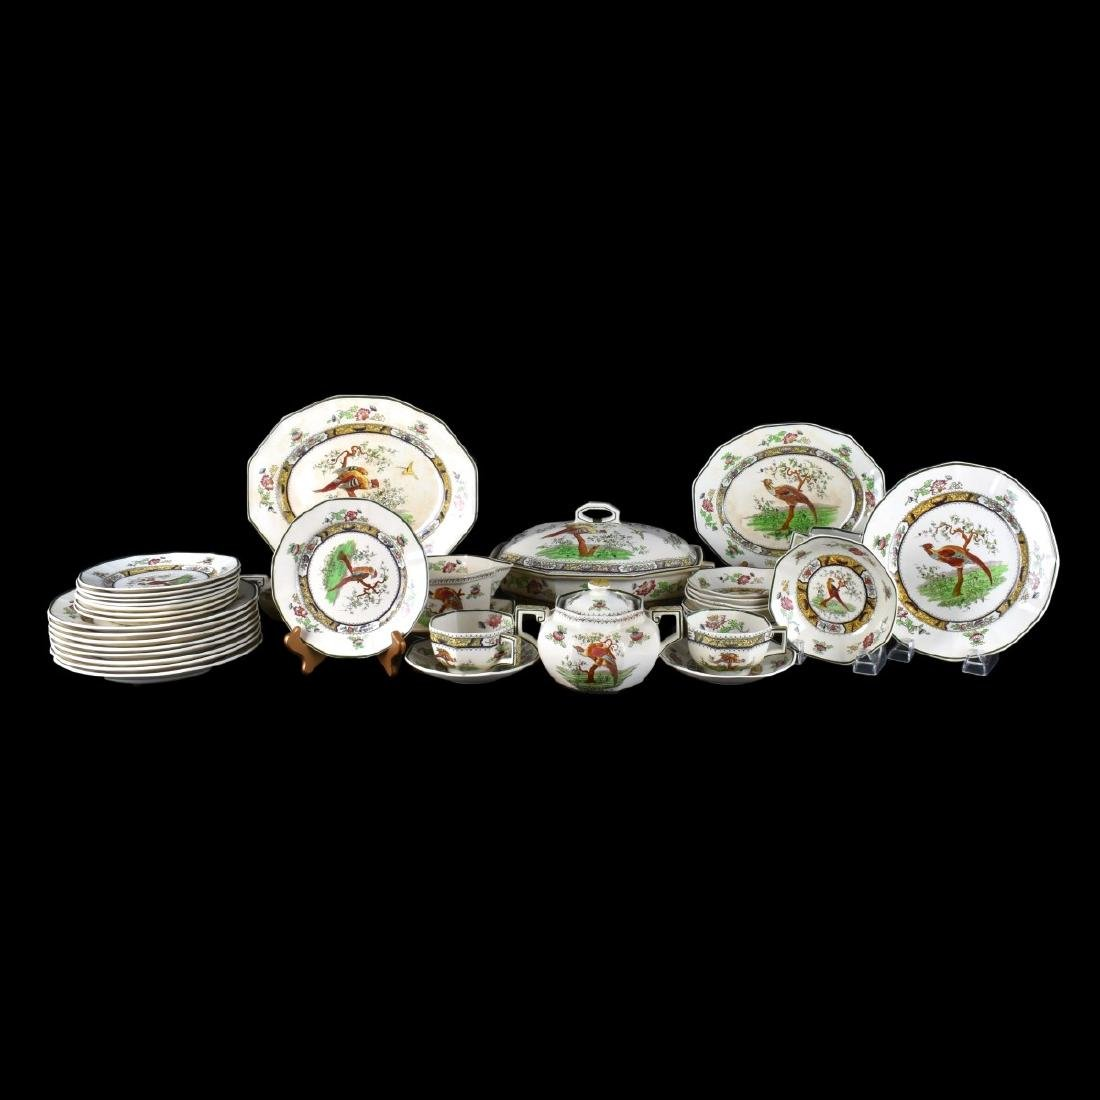 38 PC Royal Doulton Pekin